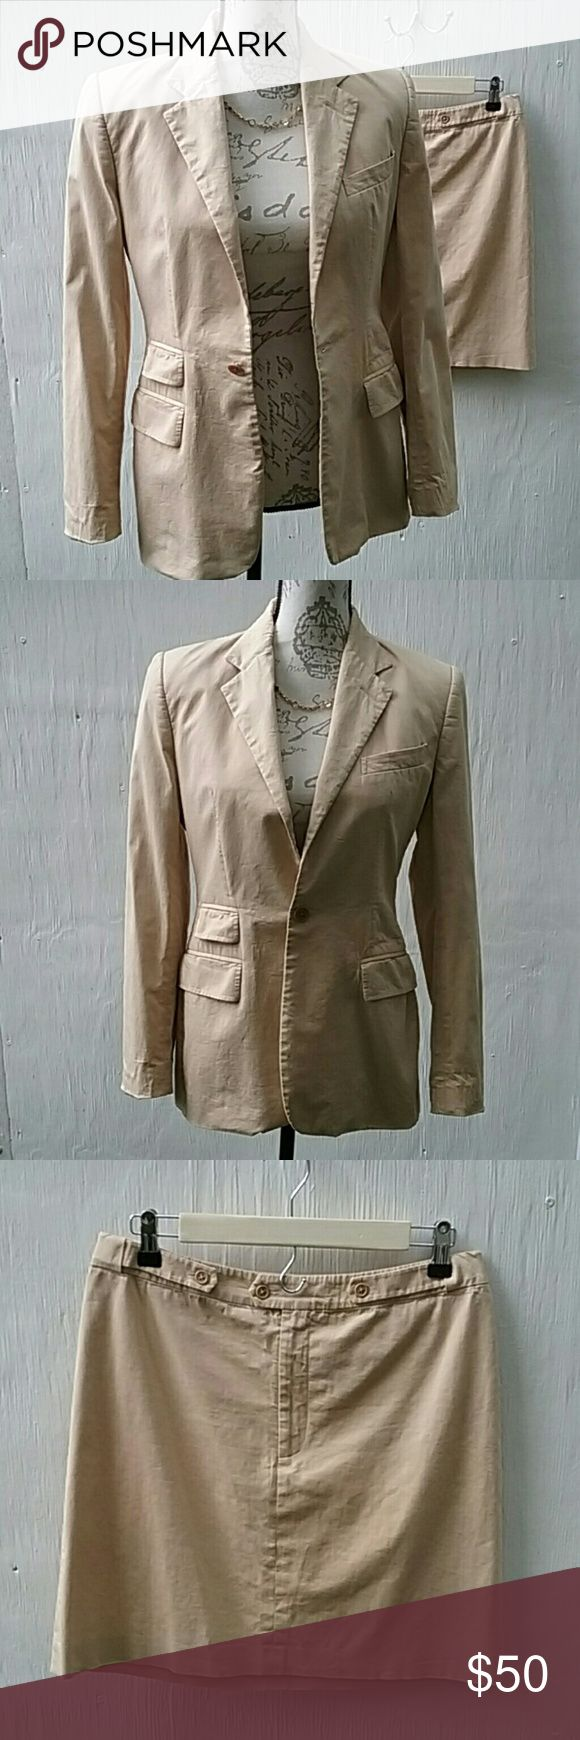 """Ralph Lauren blue label khaki suit. VG condition. Wear this slightly wrinkled, as shown, for a confident  dressed-down look. This suit was worn only a few times, but it had a few perspiration spots. I machine-washed it, like the tag says. It is a little wrinkled, but nowadays anything goes. It still looks very expensive.  Price reflects condition.  The size 6 jacket has a 37 inch bust. The hips are kinda  small, as shown. This suit does not run big.  The size 8 skirt has a 30"""" waist and is…"""